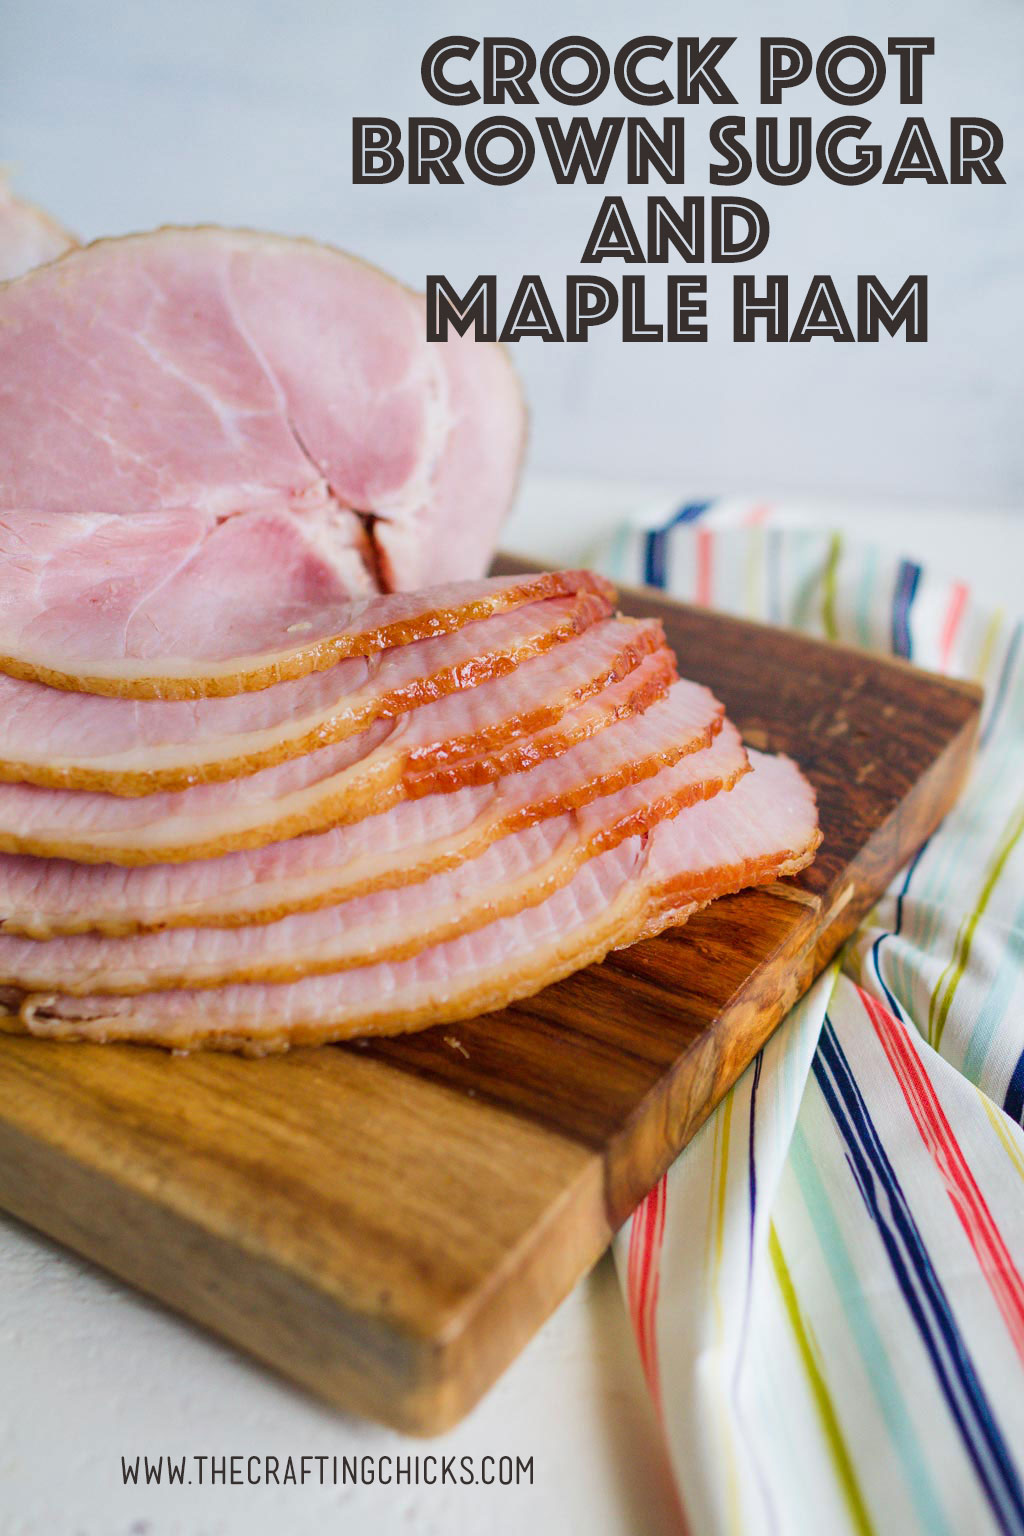 Make sure you save this delicious and easy Crock Pot Brown Sugar and Maple Ham. This recipe will be one that you come back to time and time again.